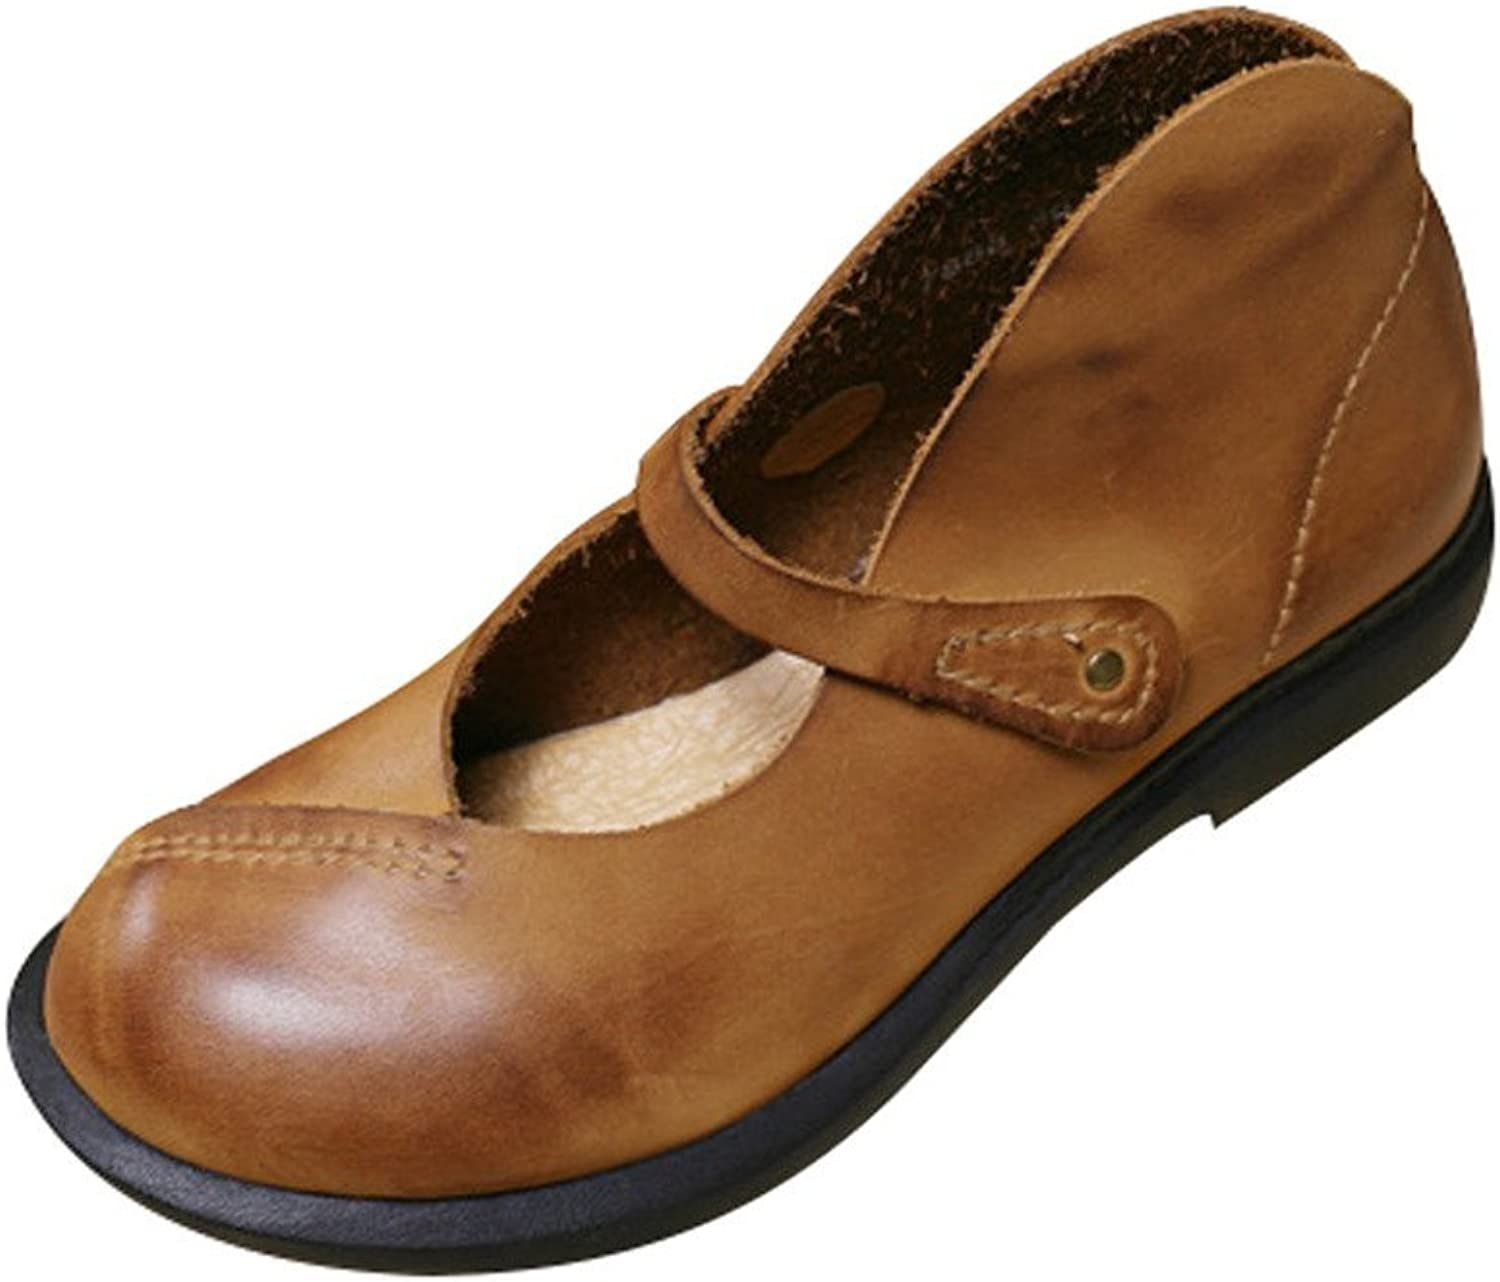 Yolee Women's Leather Flats Yellow 6.0